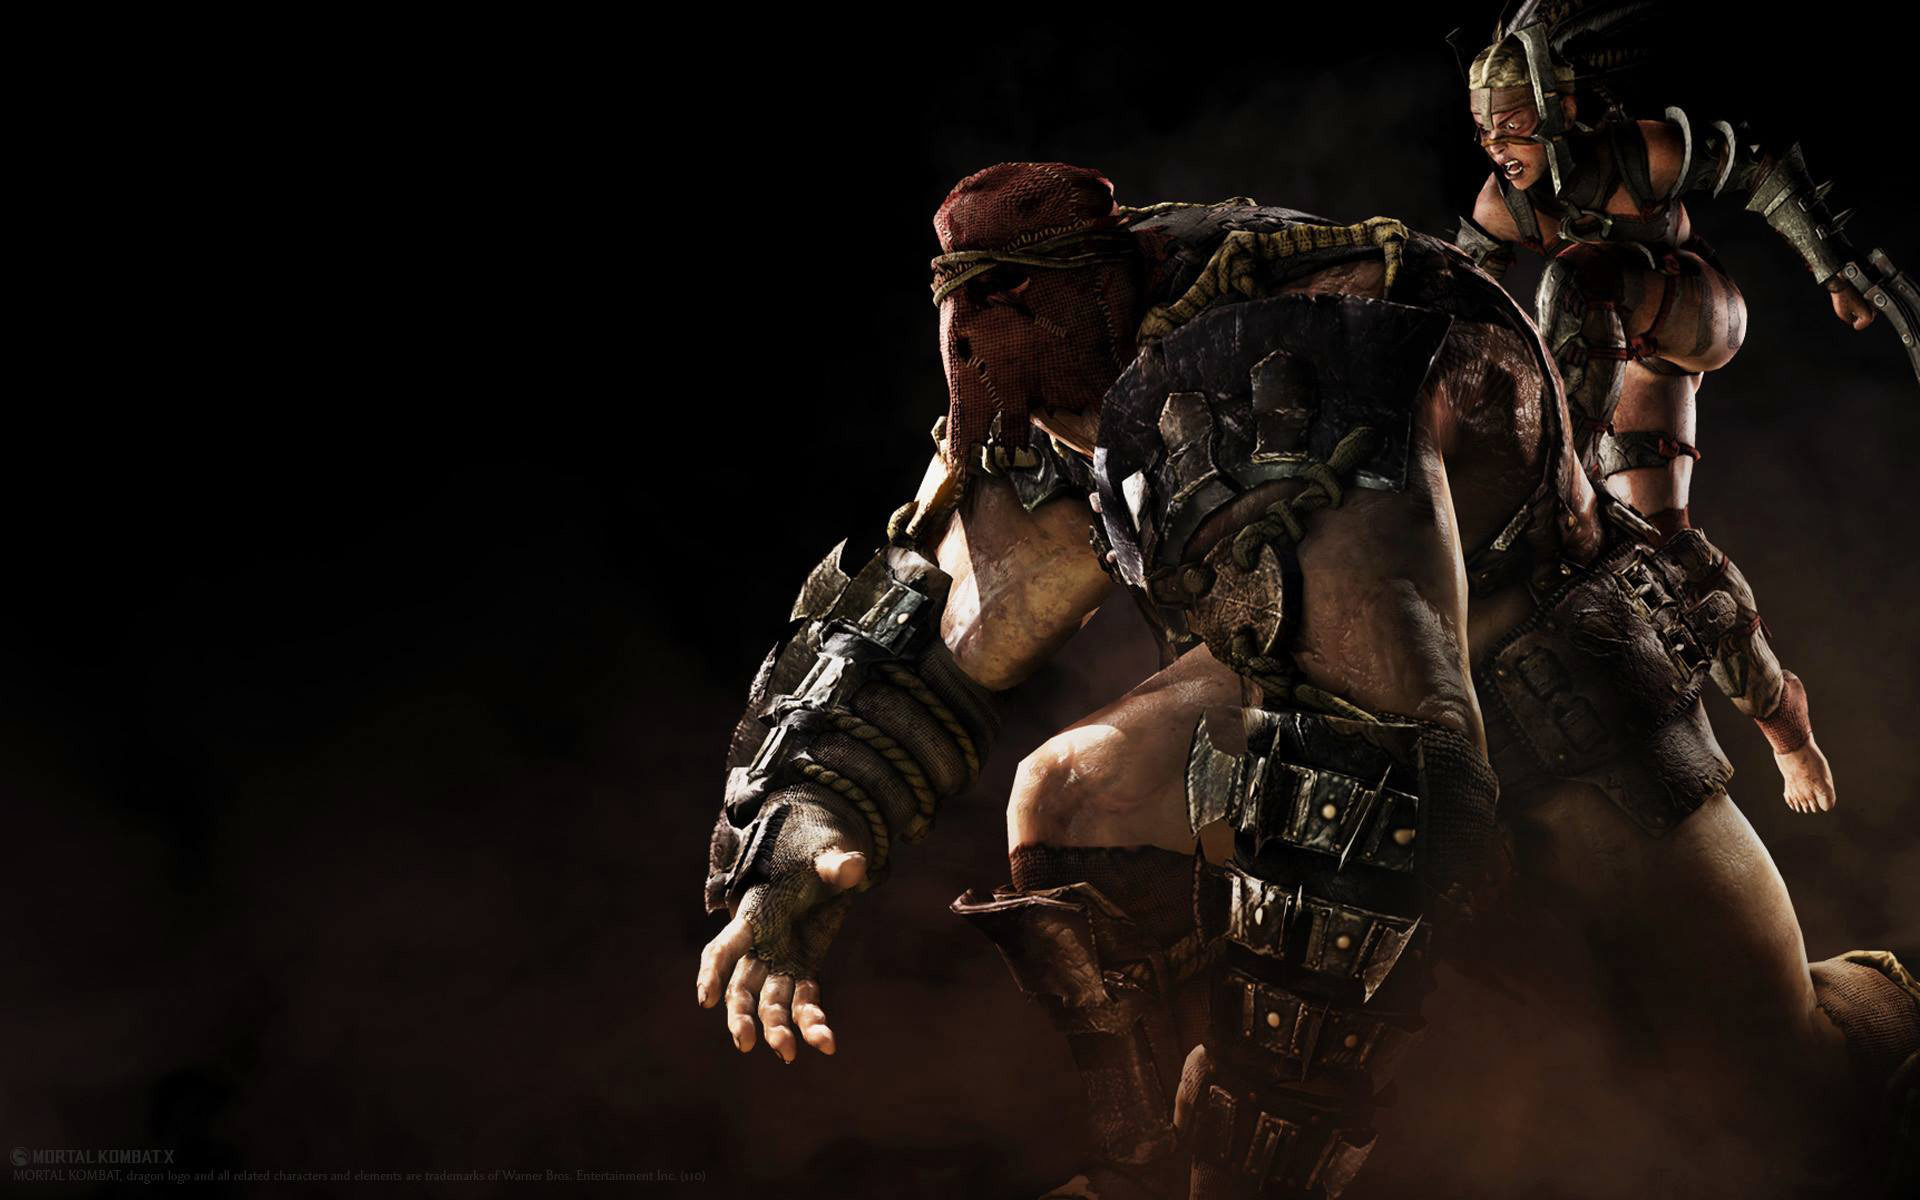 Mortal Kombat X wallpapers featuring old/new characters, image #3